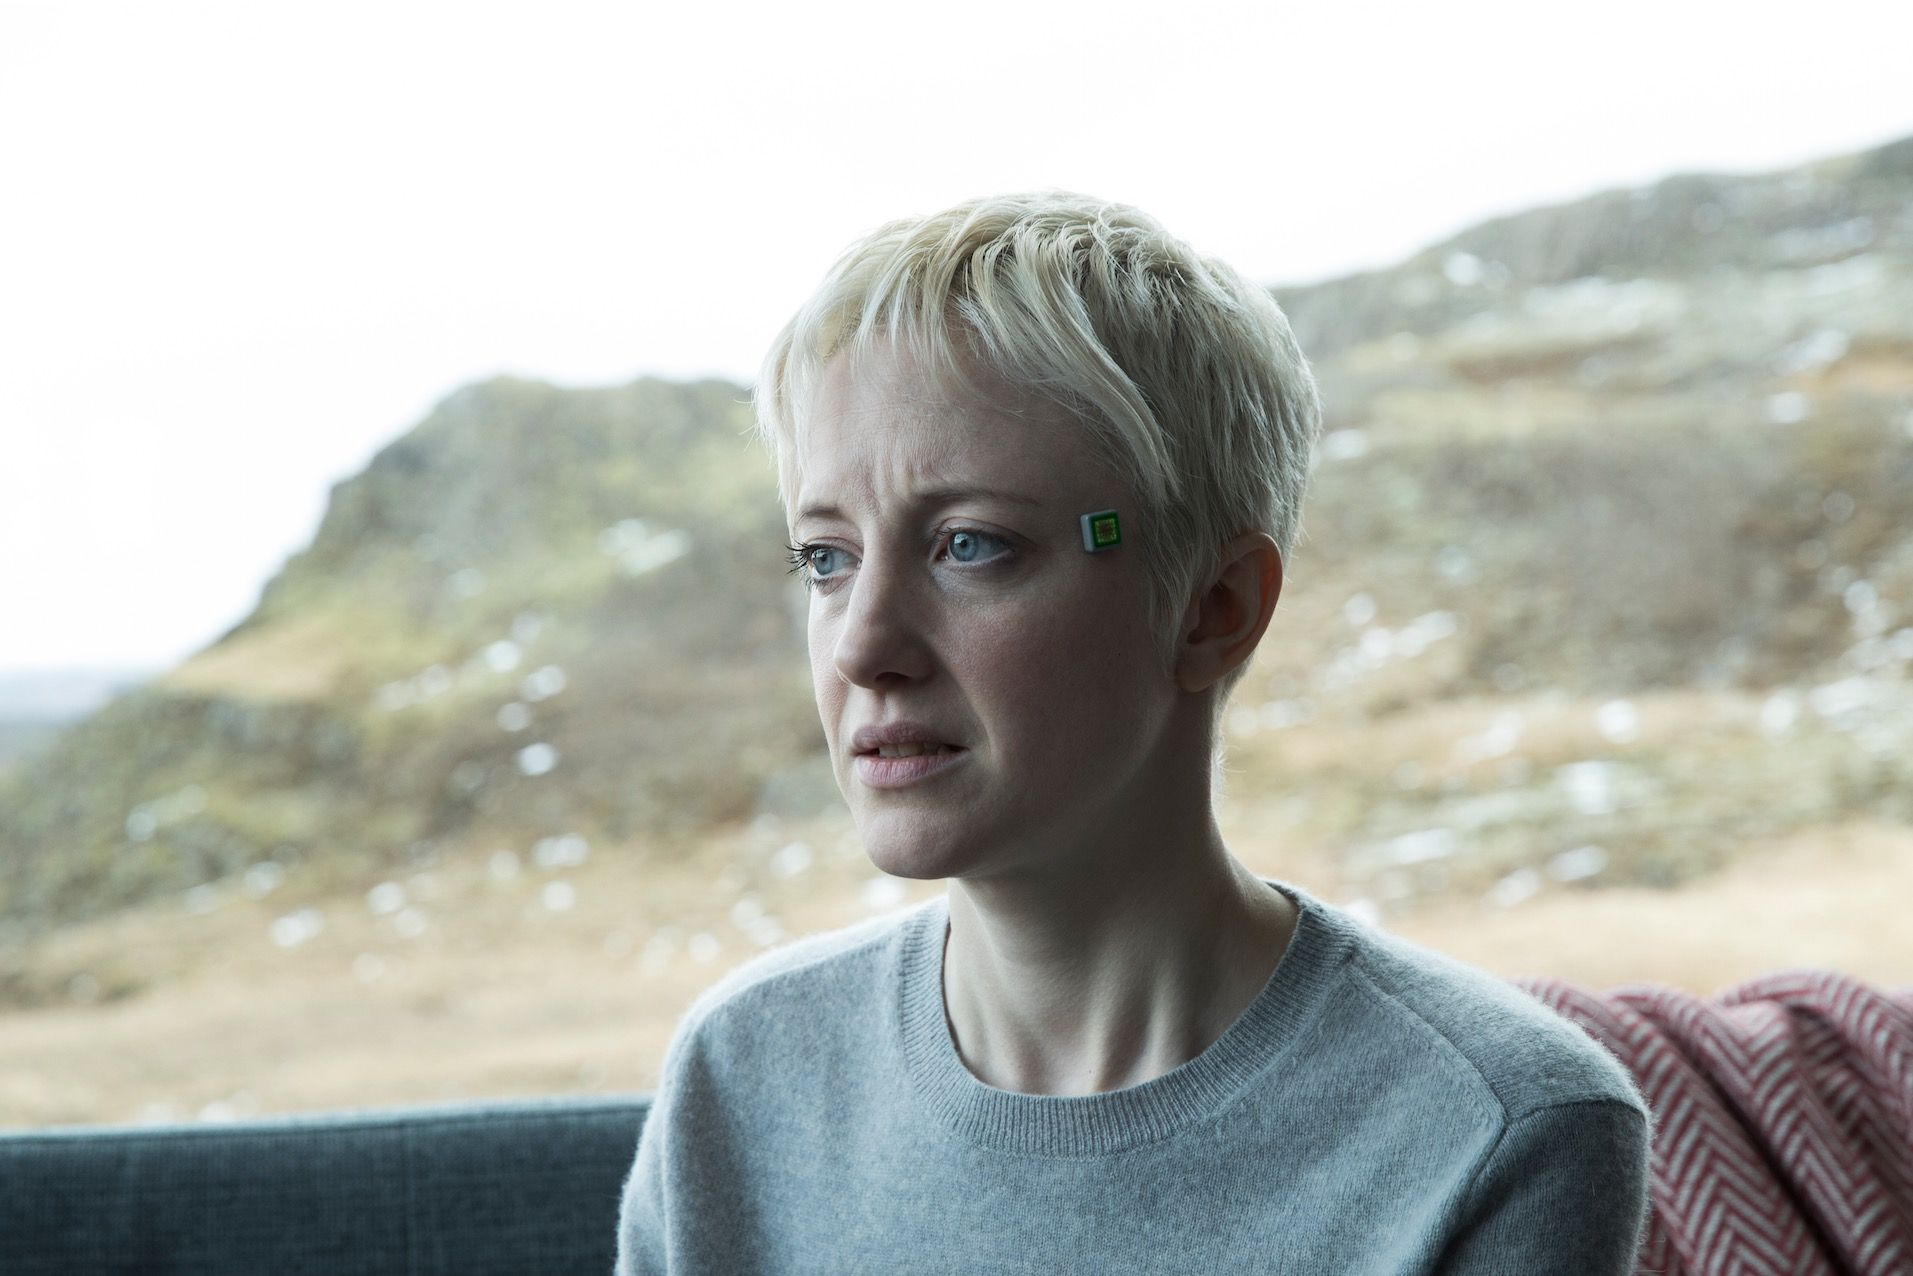 bb40c759b Black Mirror season 4 reviews are mixed, as critics praise 'Hang the DJ'  and 'USS Callister' but slam 'Black Museum'